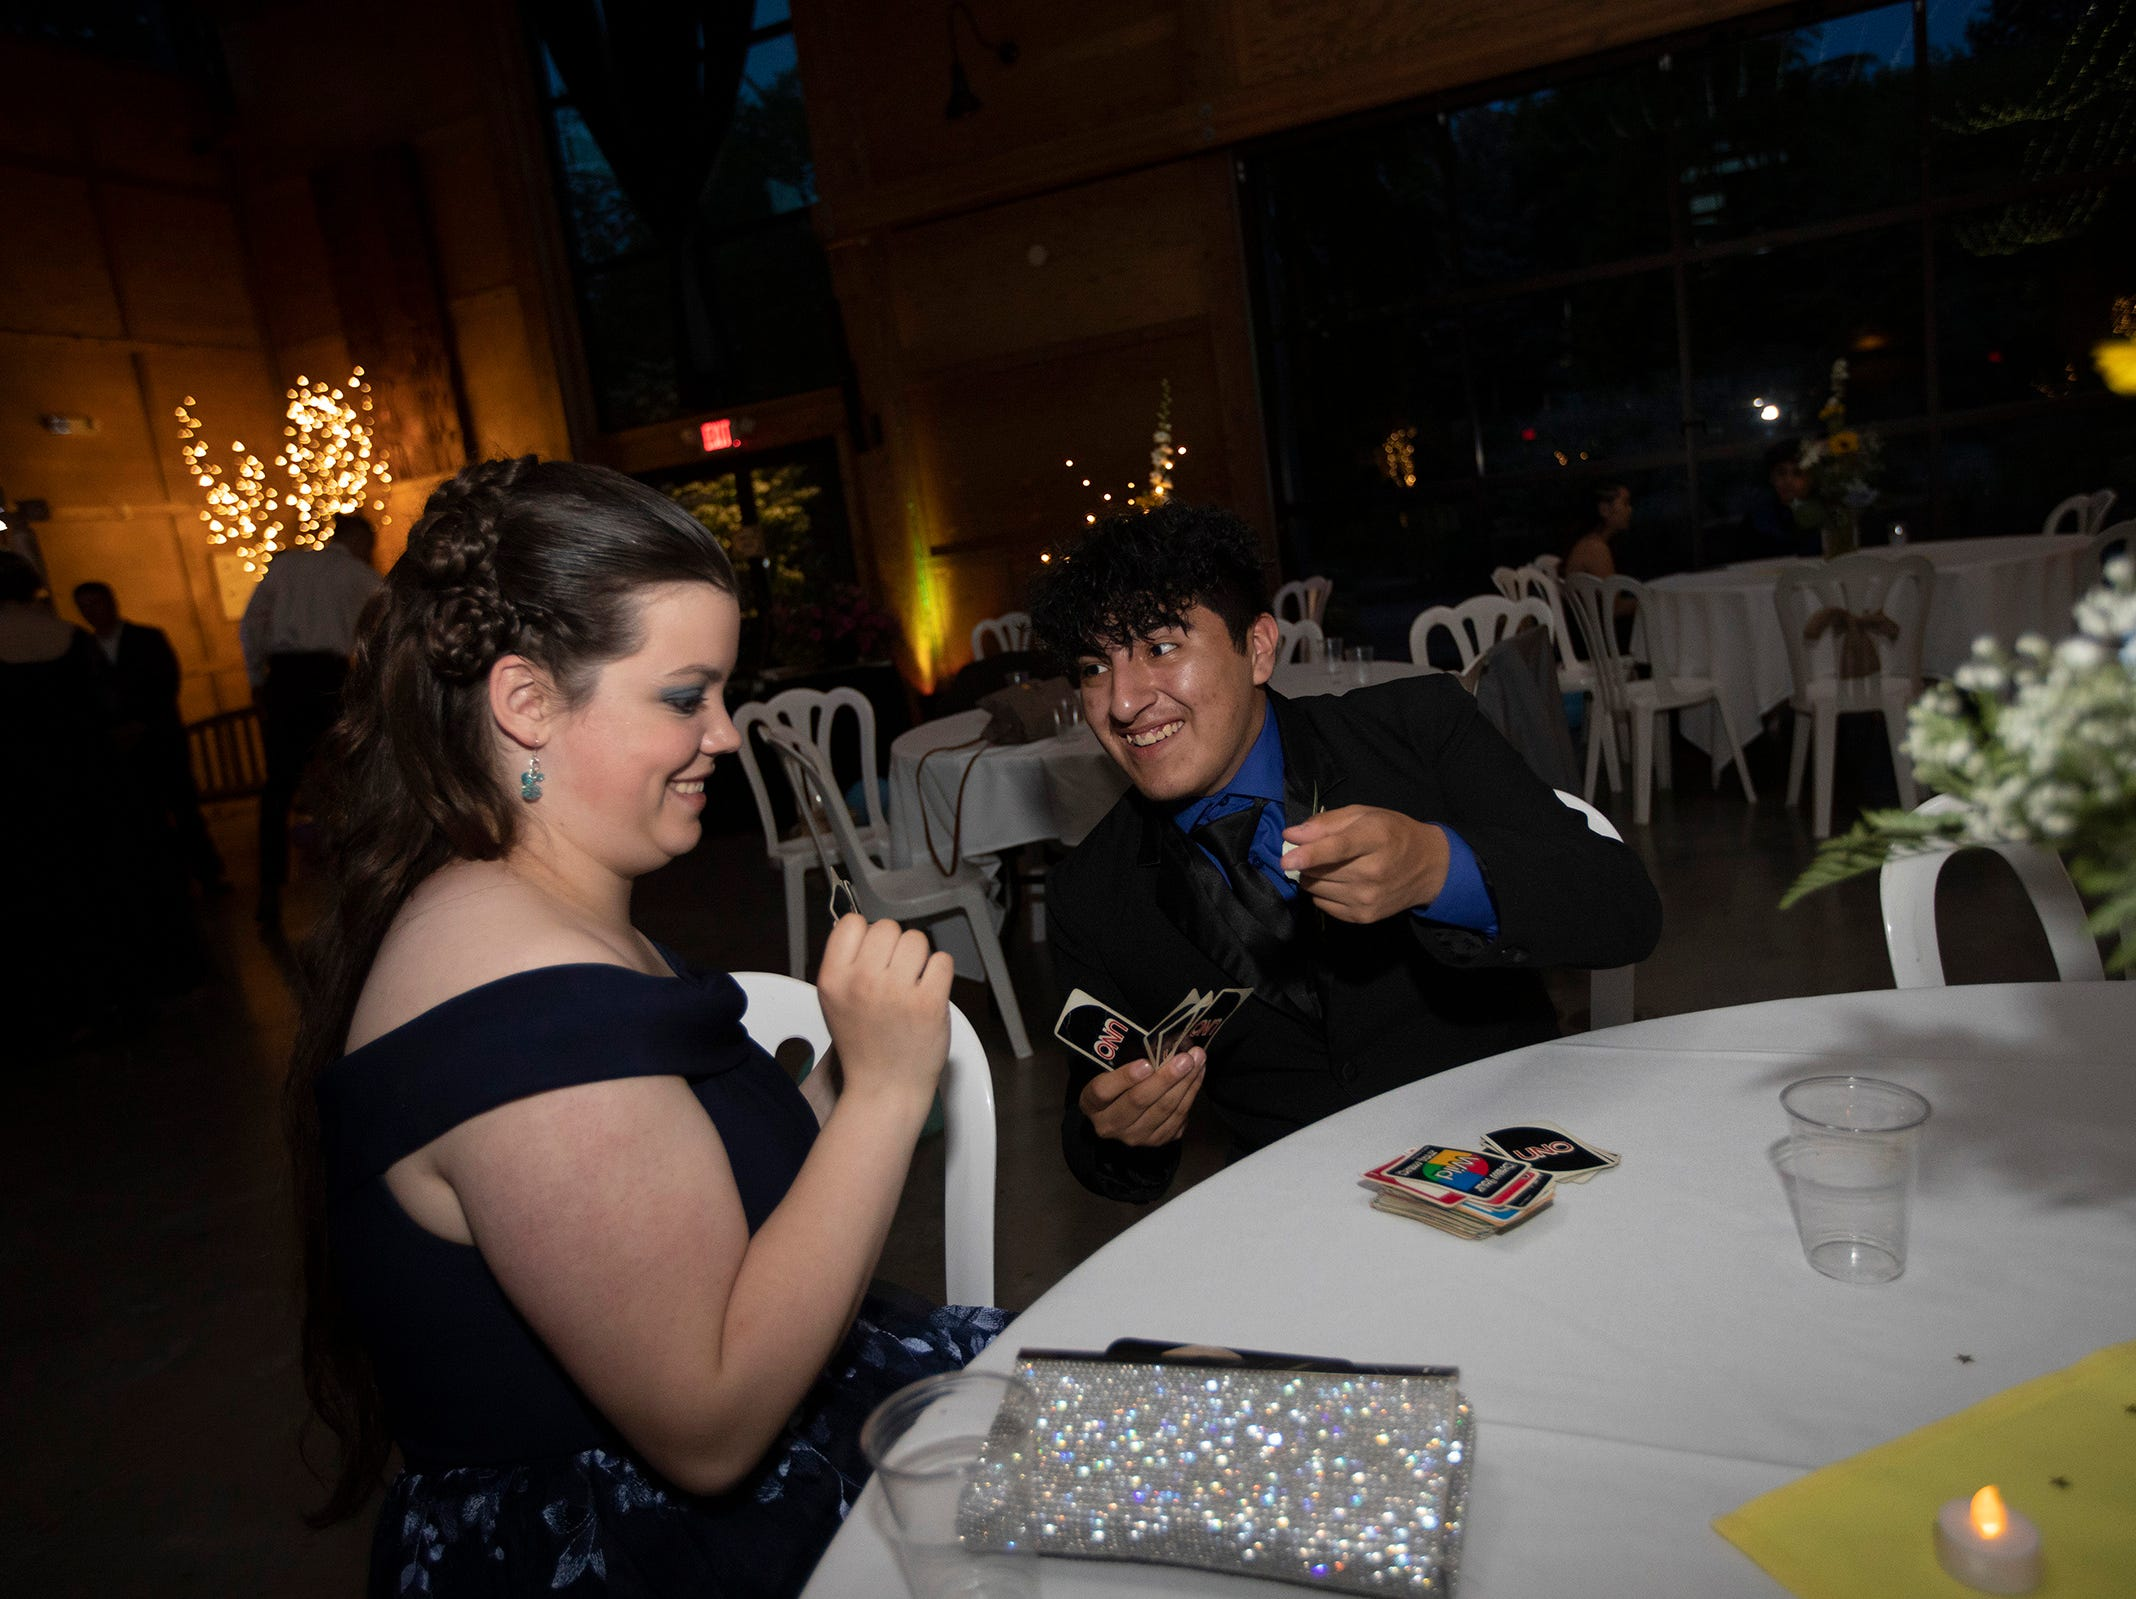 Olivia Patterson, 18, and Marco Garcia, 18, play uno during the Silverton High Schoo prom at the Oregon Garden on Saturday, May 11.